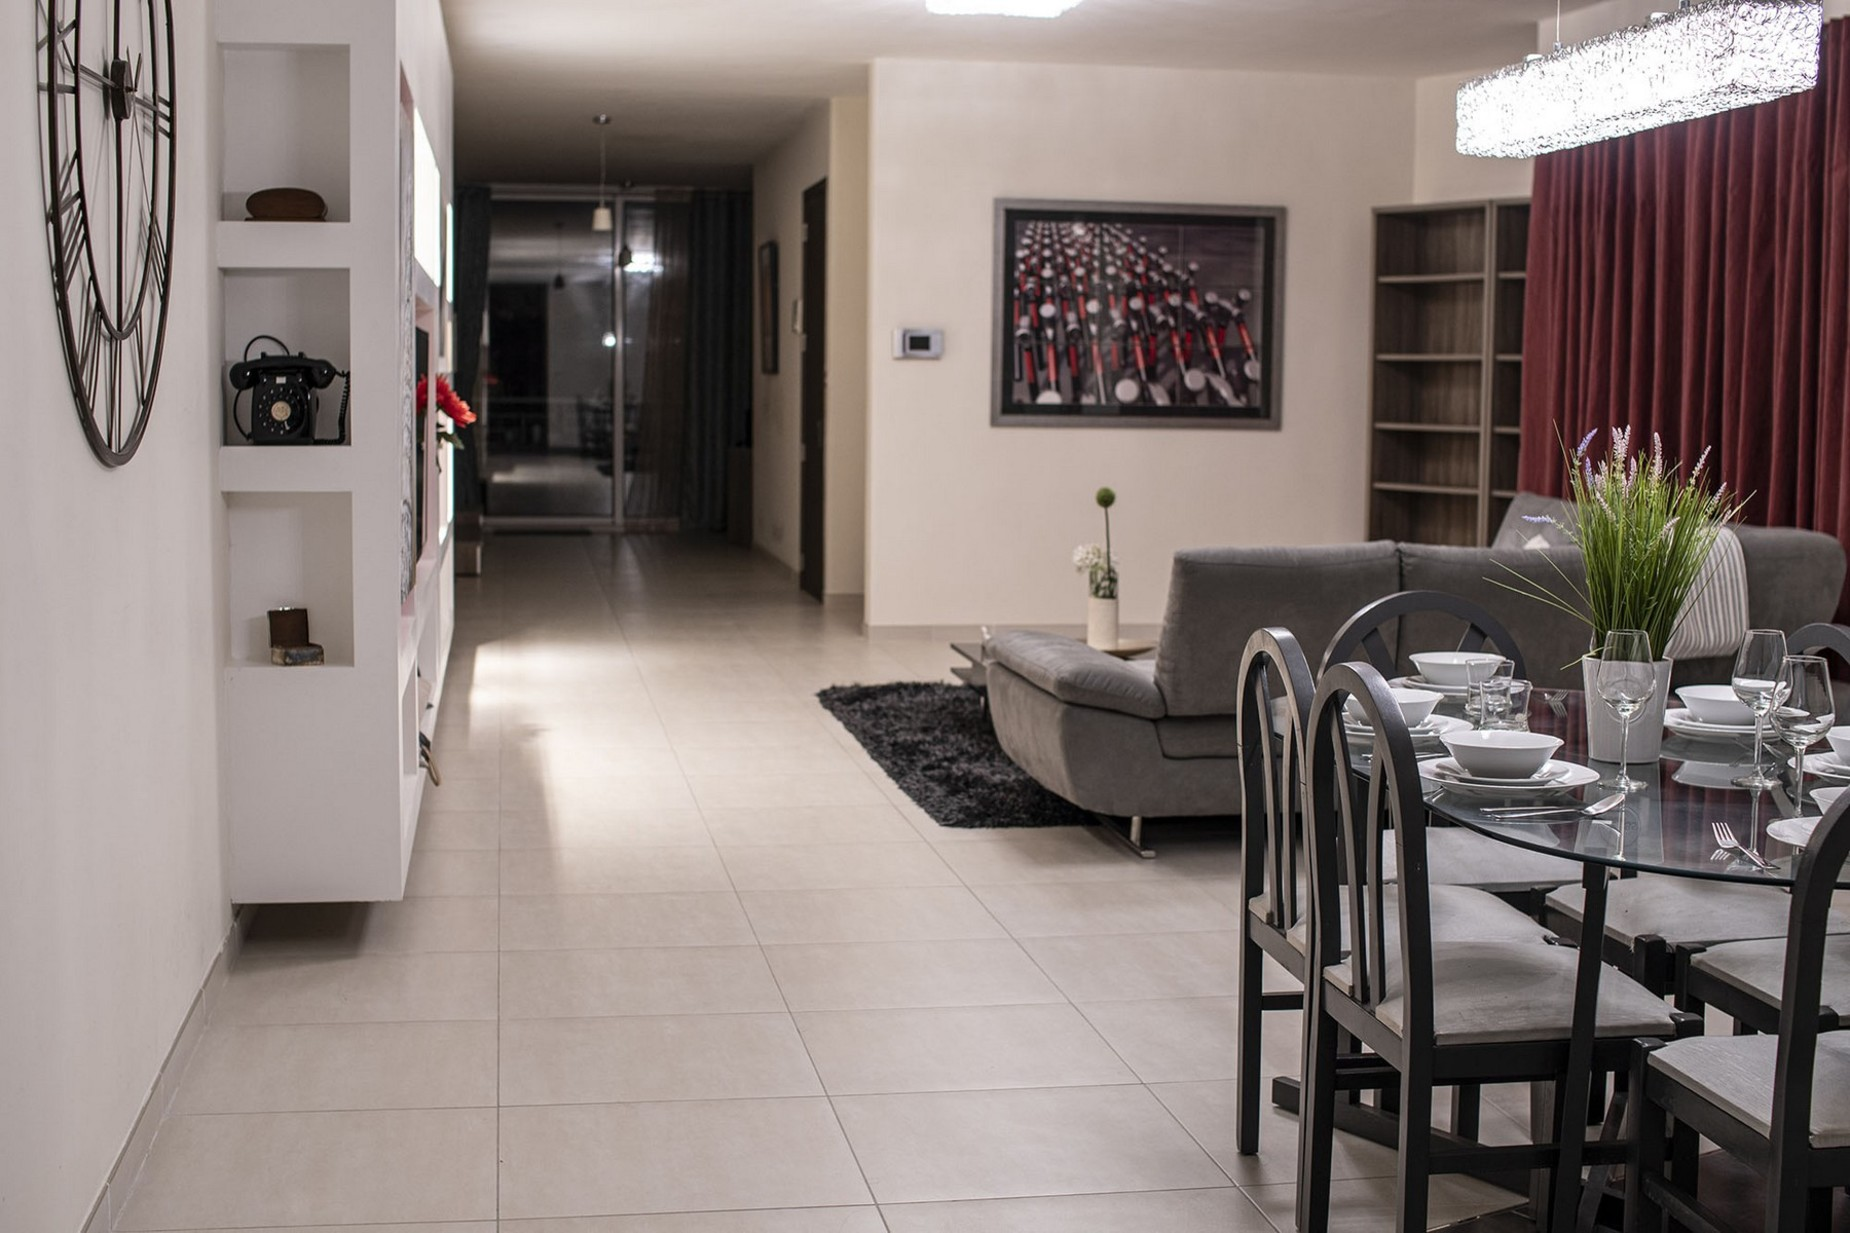 3 bed Apartment For Rent in Attard, Attard - thumb 12